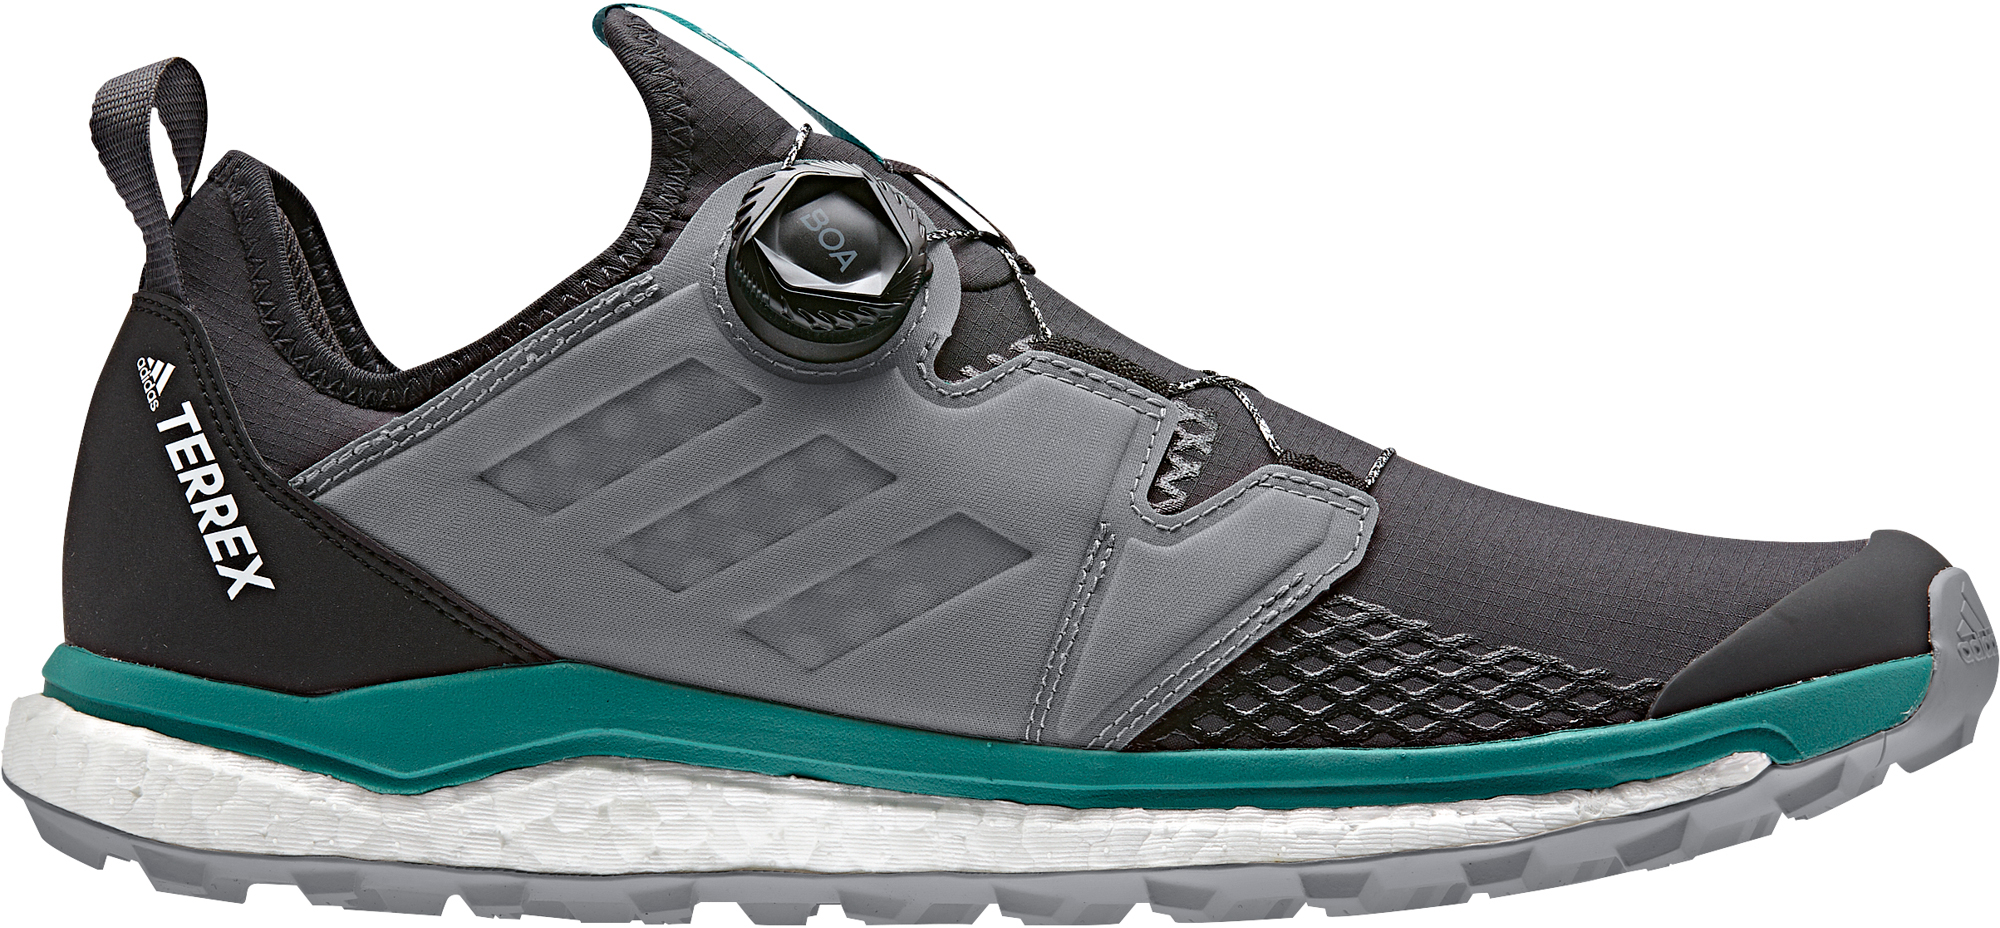 adidas Terrex Agravic BOA Shoes | Running shoes